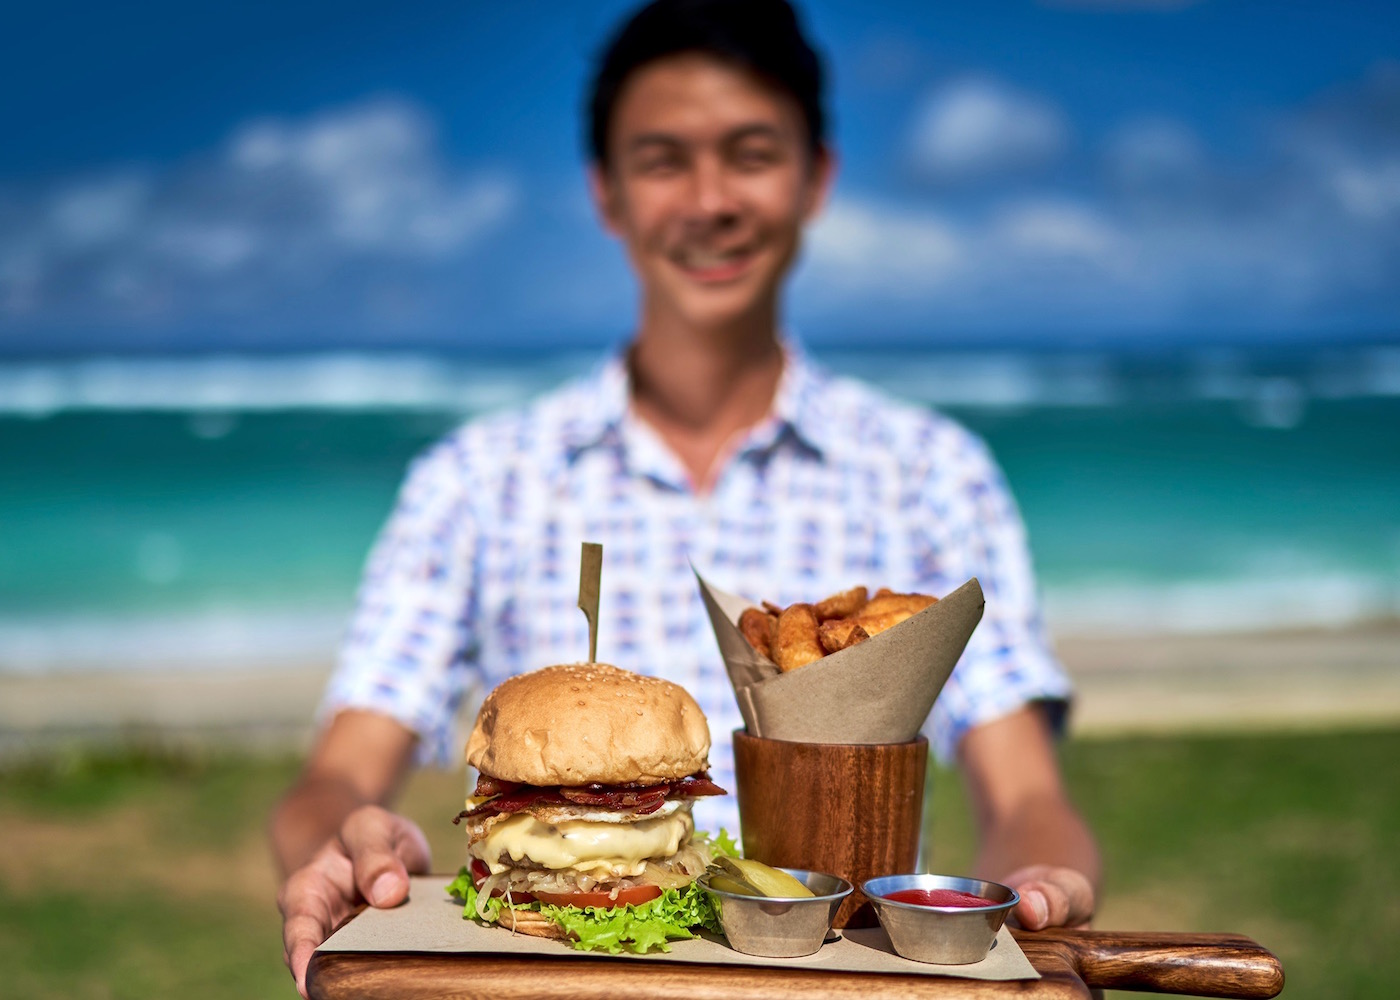 Sunday brunch by the beach? Head to Roosterfish Beach Club for fresh seafood, buckets of beer & unlimited avocado!